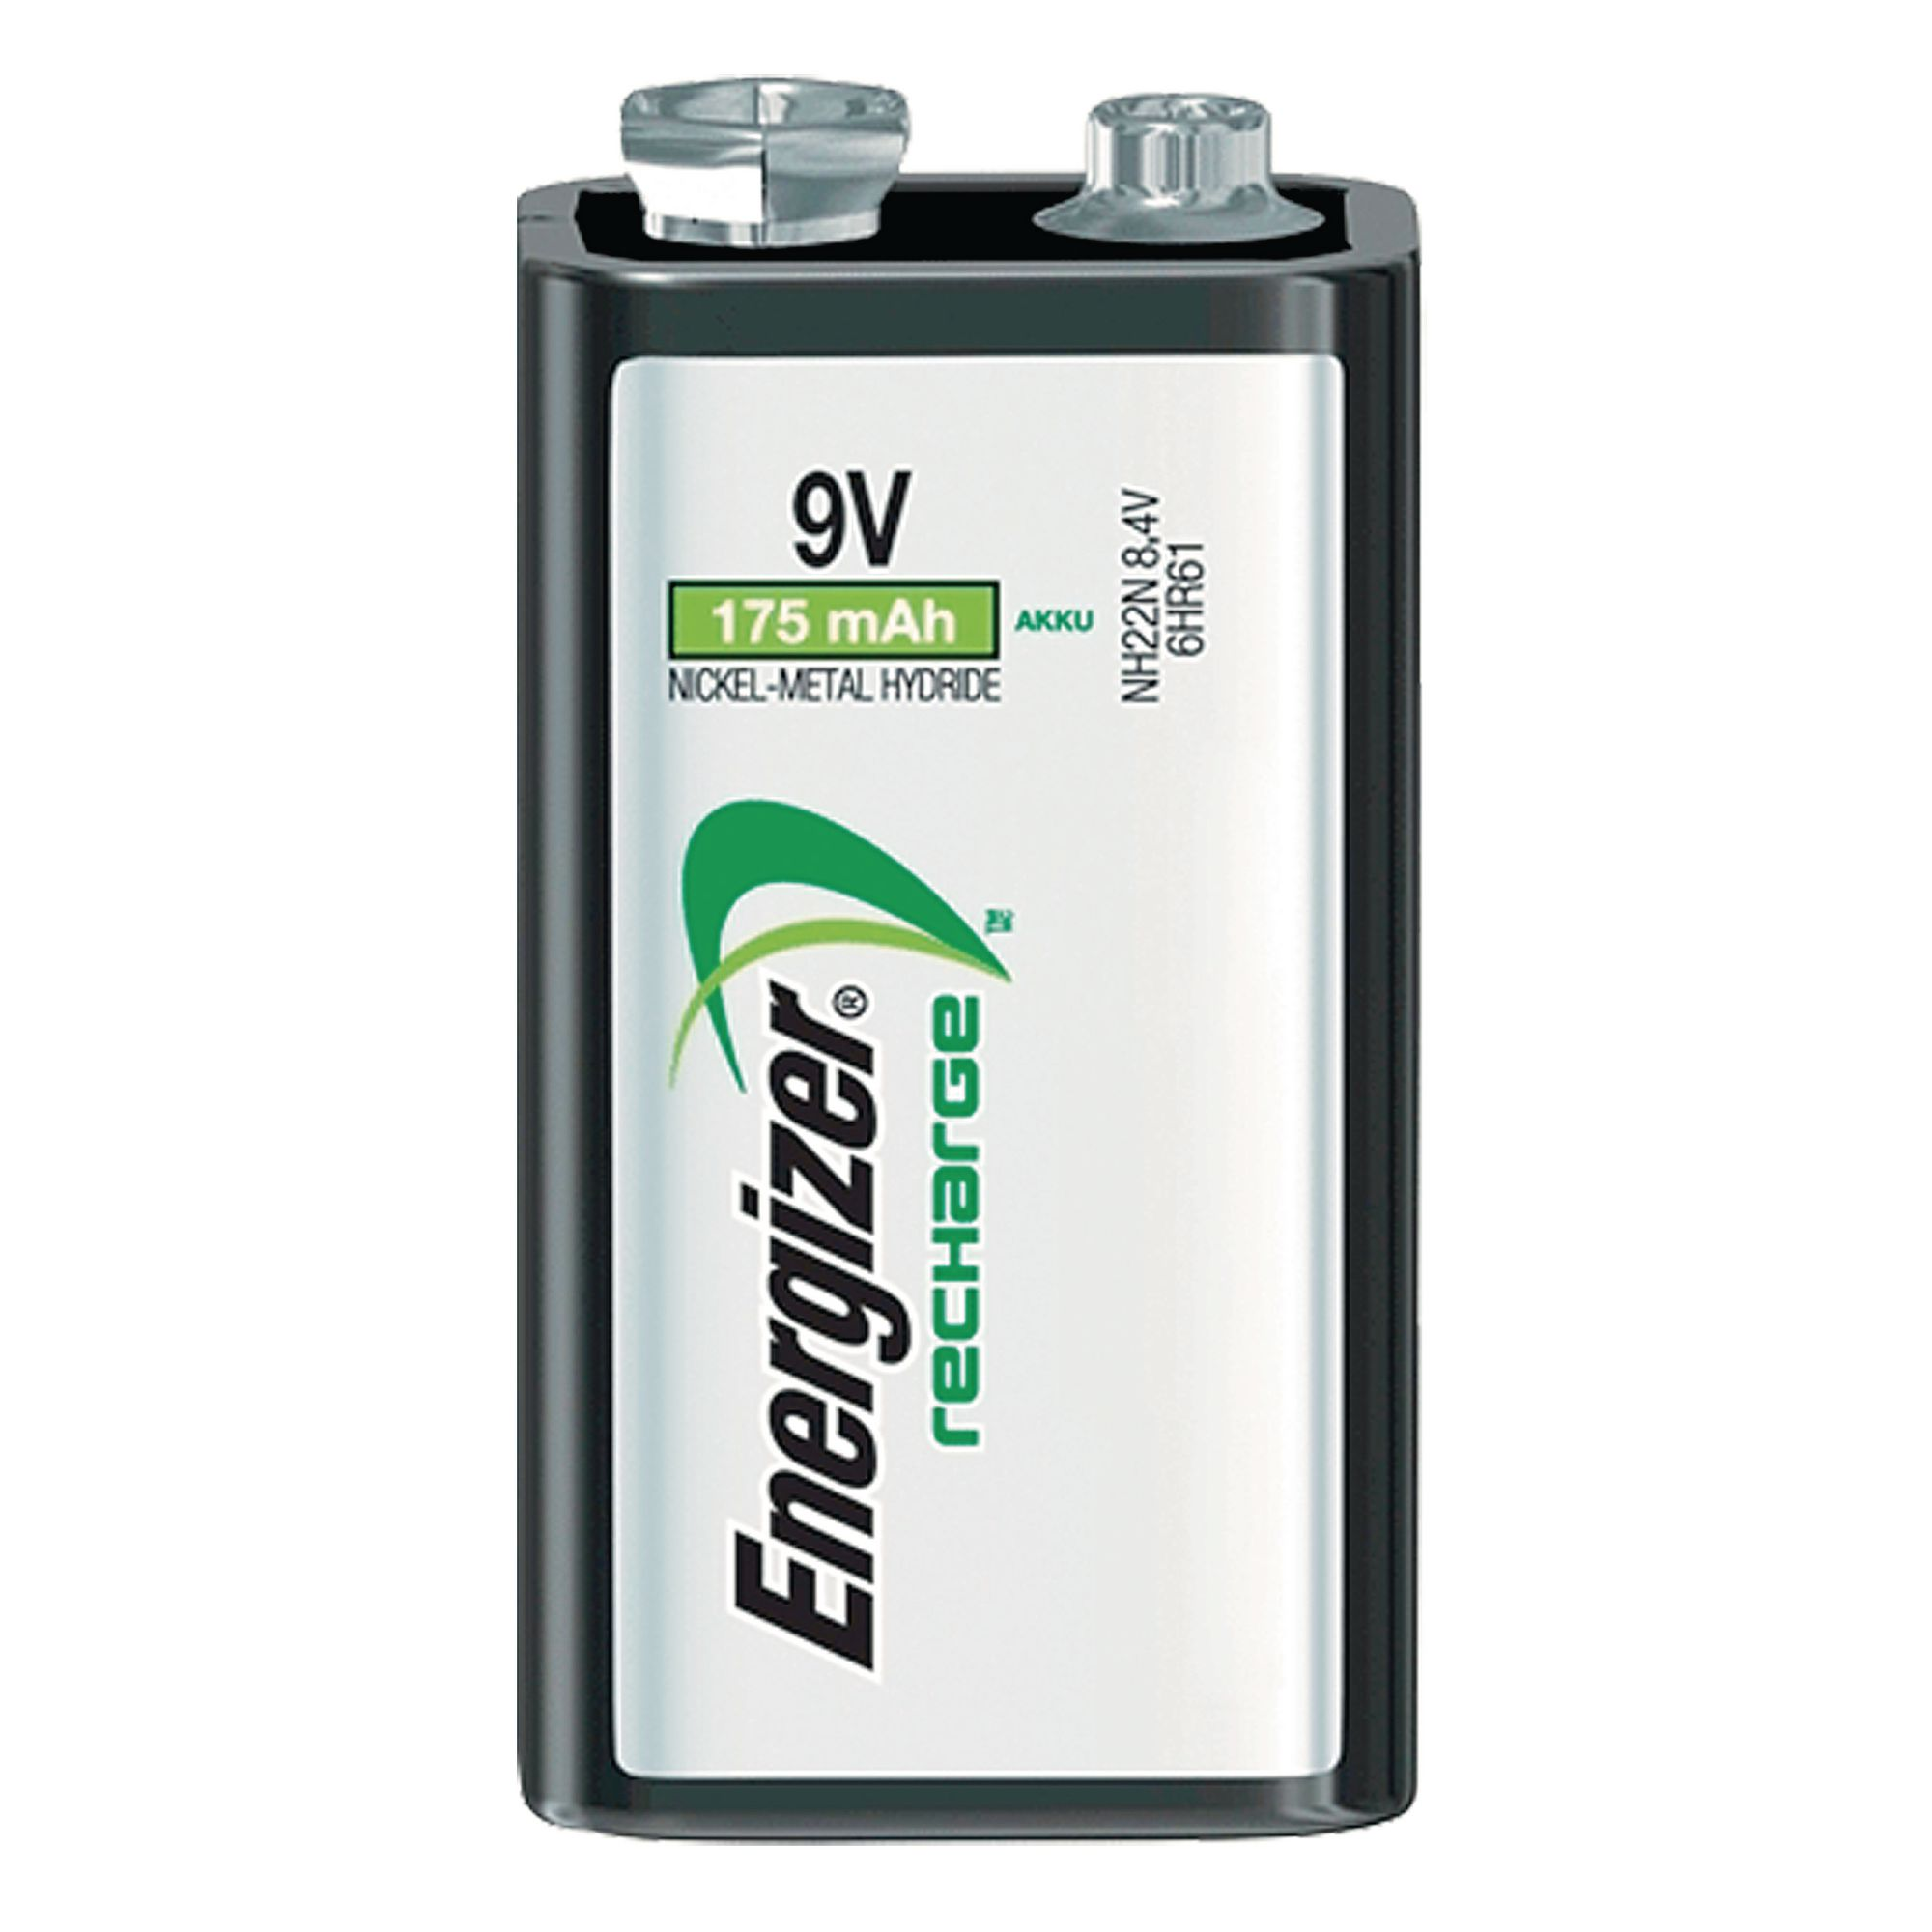 Rechargeable Nickel Metal Hydride Battery 9v Hr22